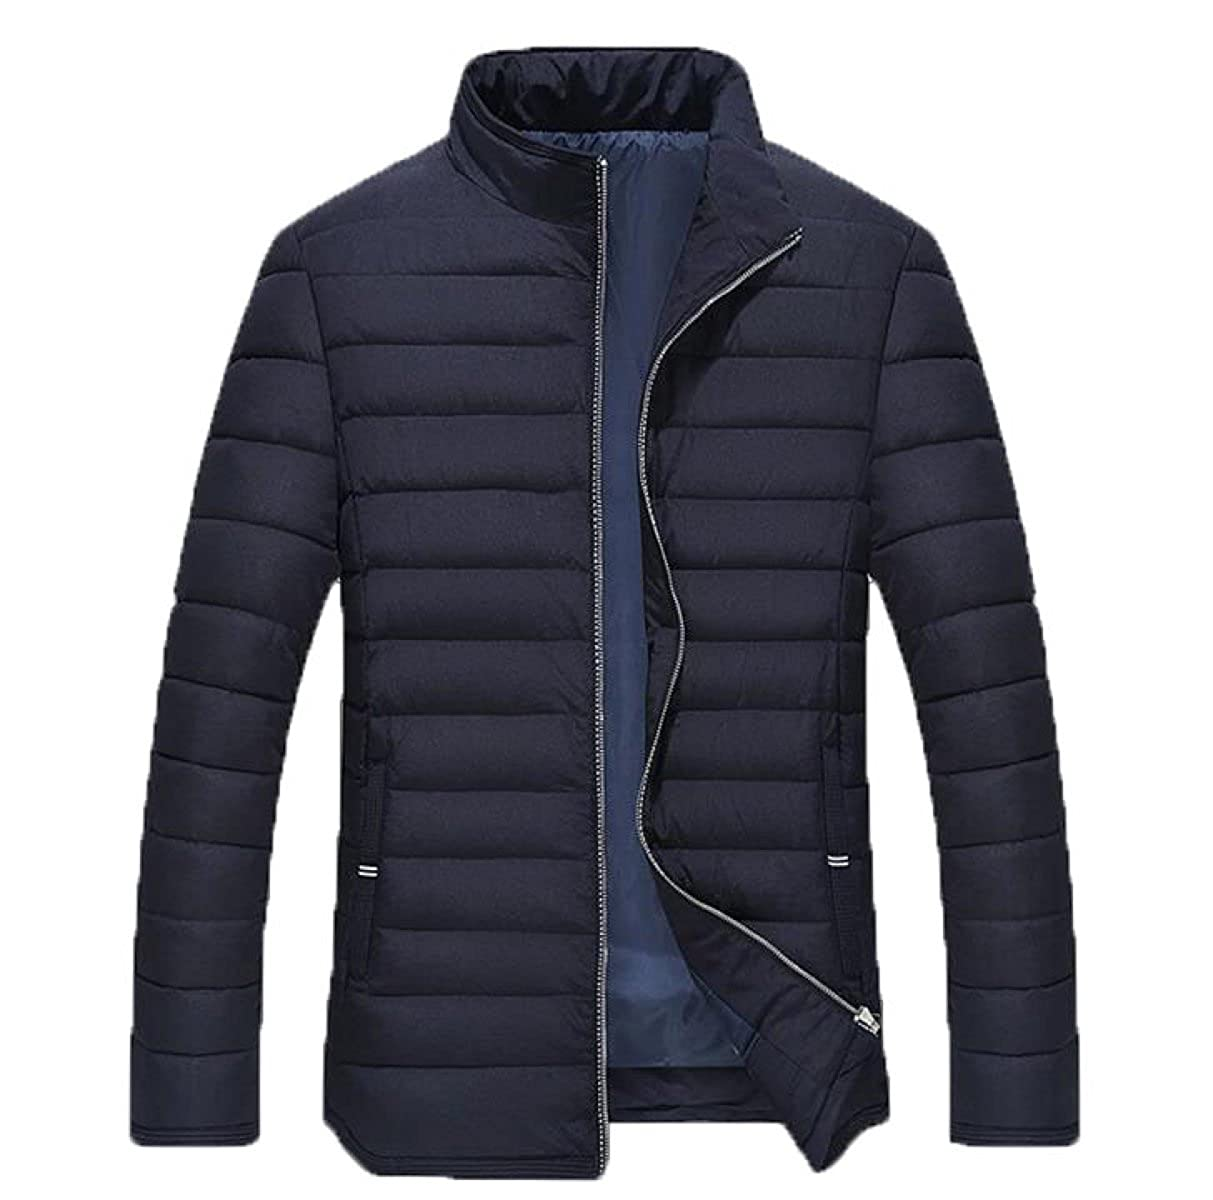 Winter Cold Warm Men's Jacket Cotton Loose Loose Zipper Closure Cotton Jacket Coat PF56SNR Ltd